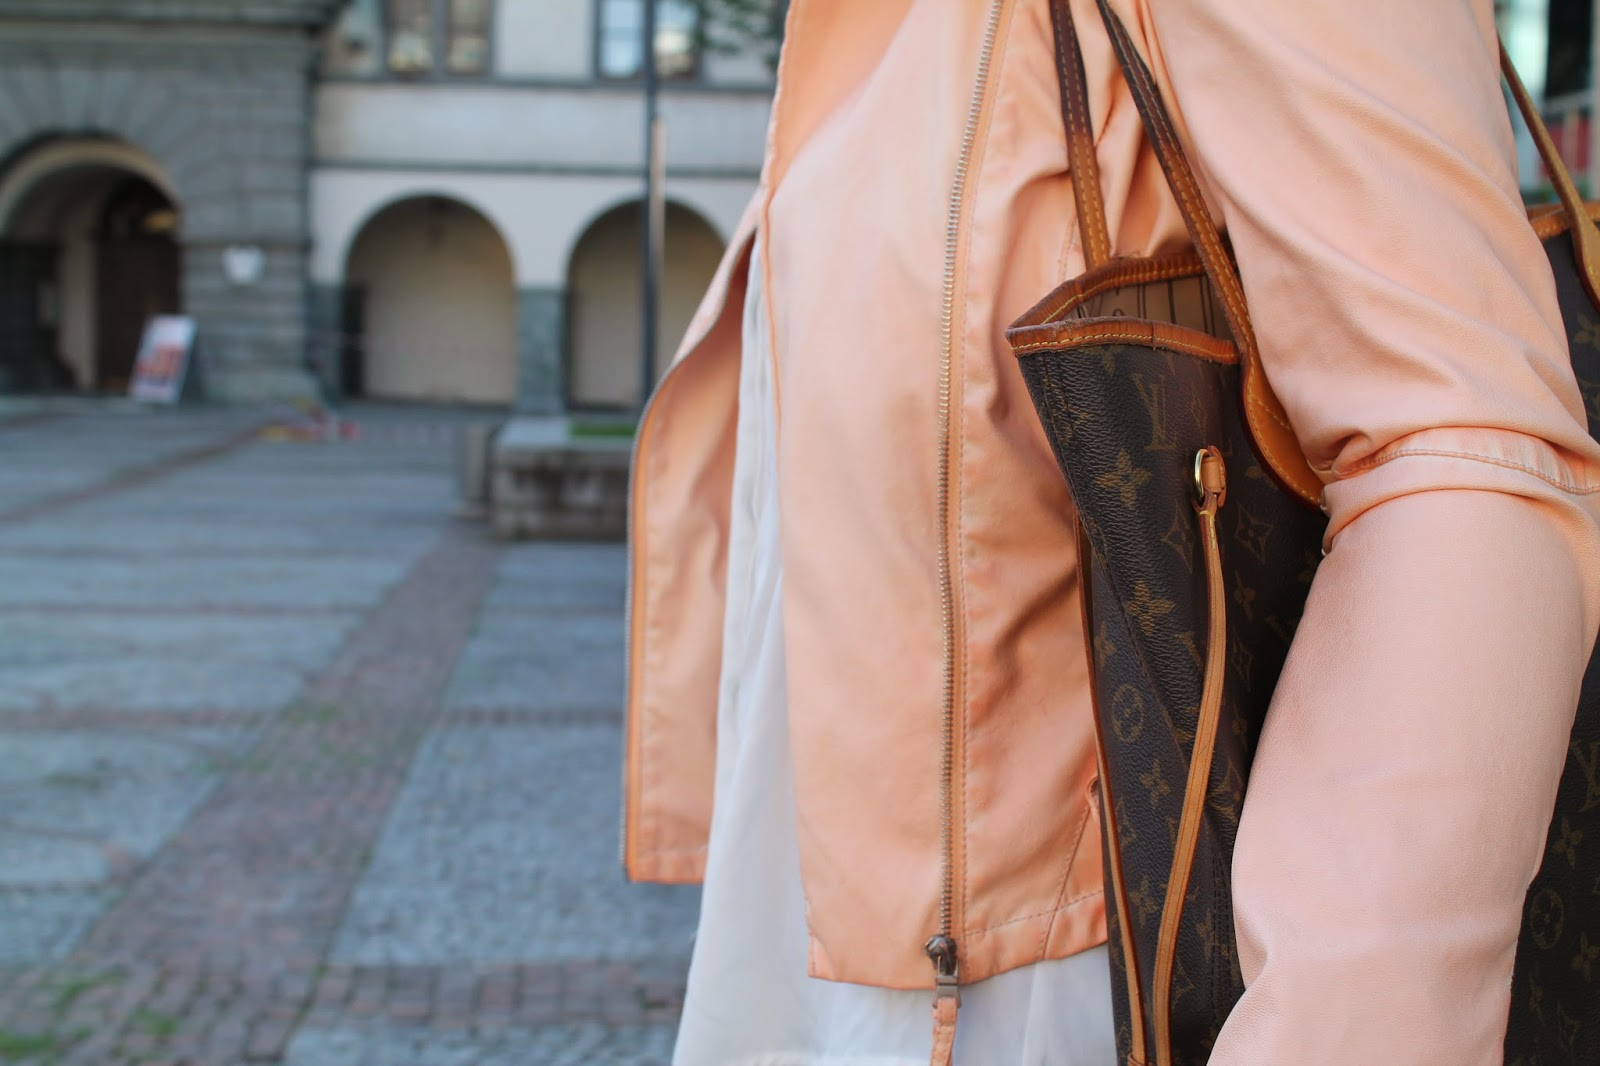 Fashionblogger Austria / Österreich / Deutsch / German / Kärnten / Carinthia / Klagenfurt / Köttmannsdorf / Spring Look / Classy / Edgy / Summer / Summer Style 2014 / Summer Look / Fashionista Look / Apricot Jacket / Peach Leather Jacket / Levis Jeans / Louis Vuitton Neverfull MC / Zara Statement Necklace /